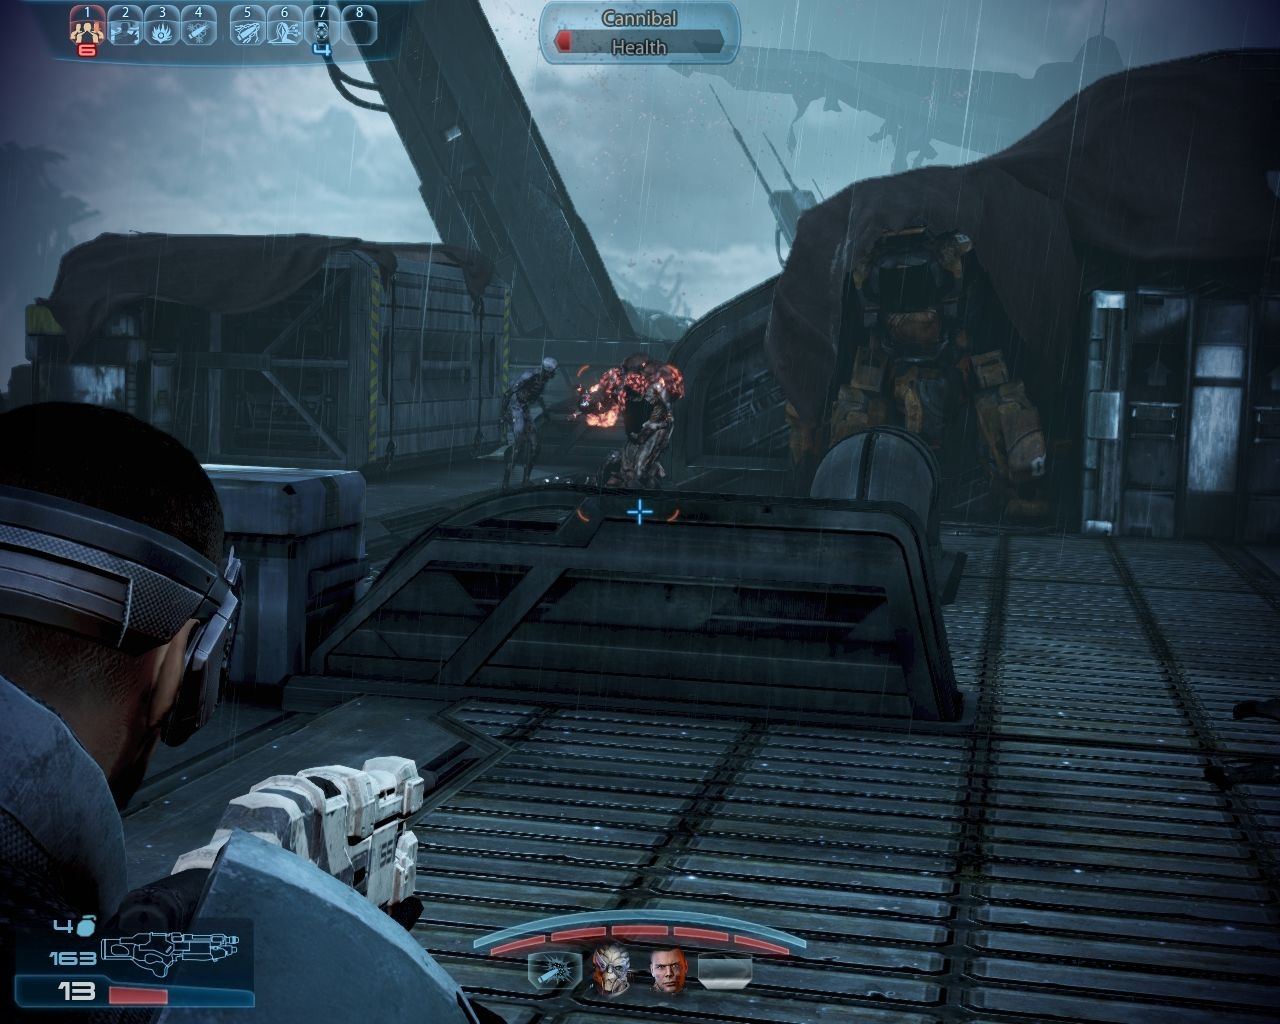 Mass Effect 3: Leviathan Windows Early enemies aren't too difficult.